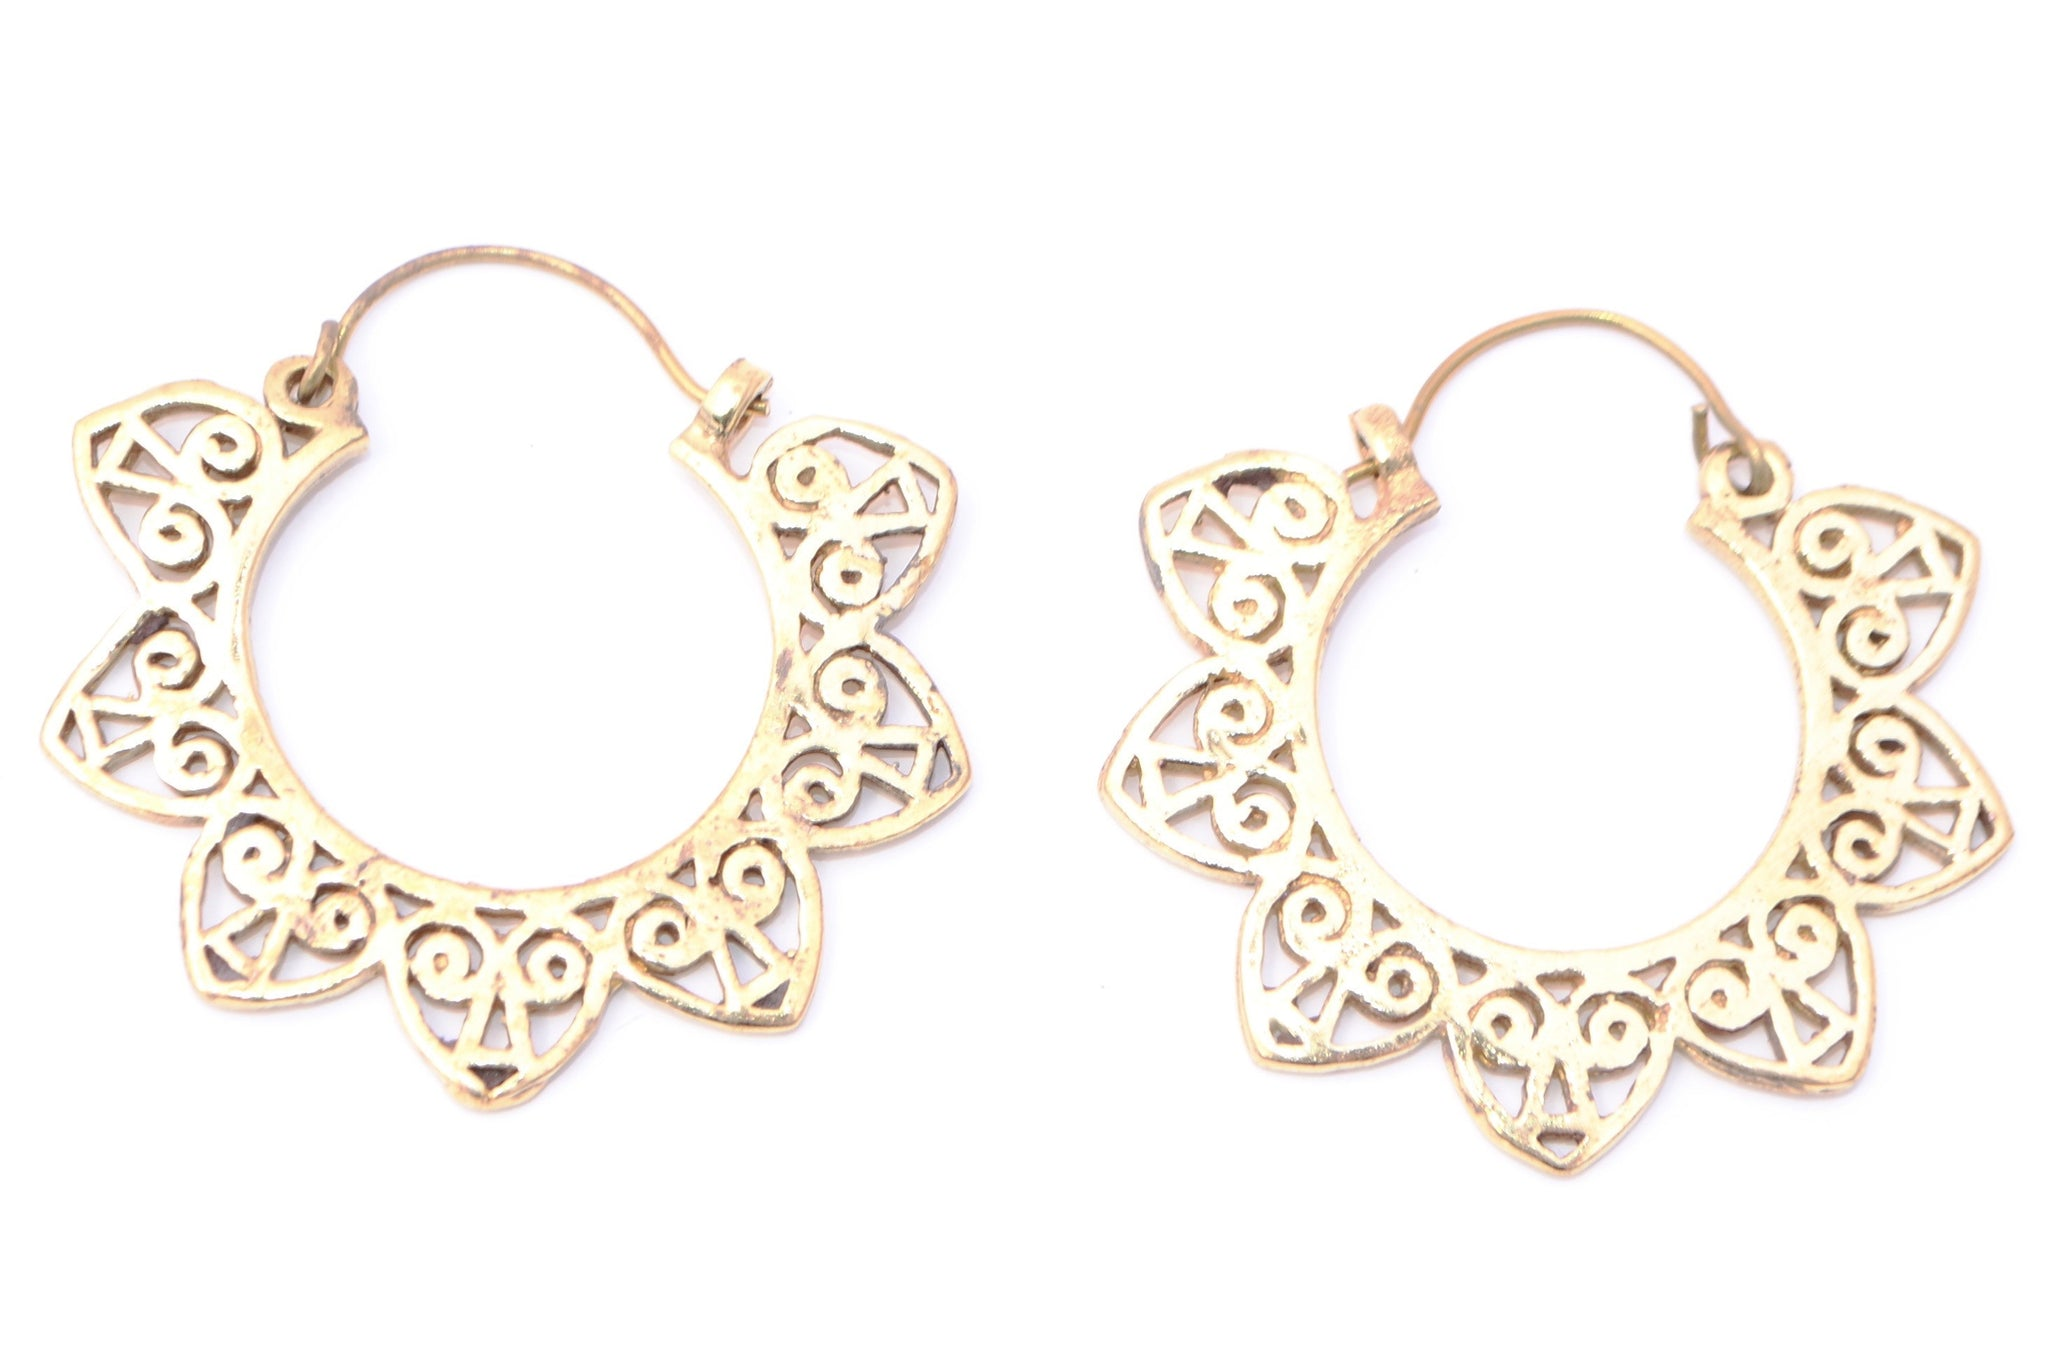 Sun Tribal Earrings - Filosophy